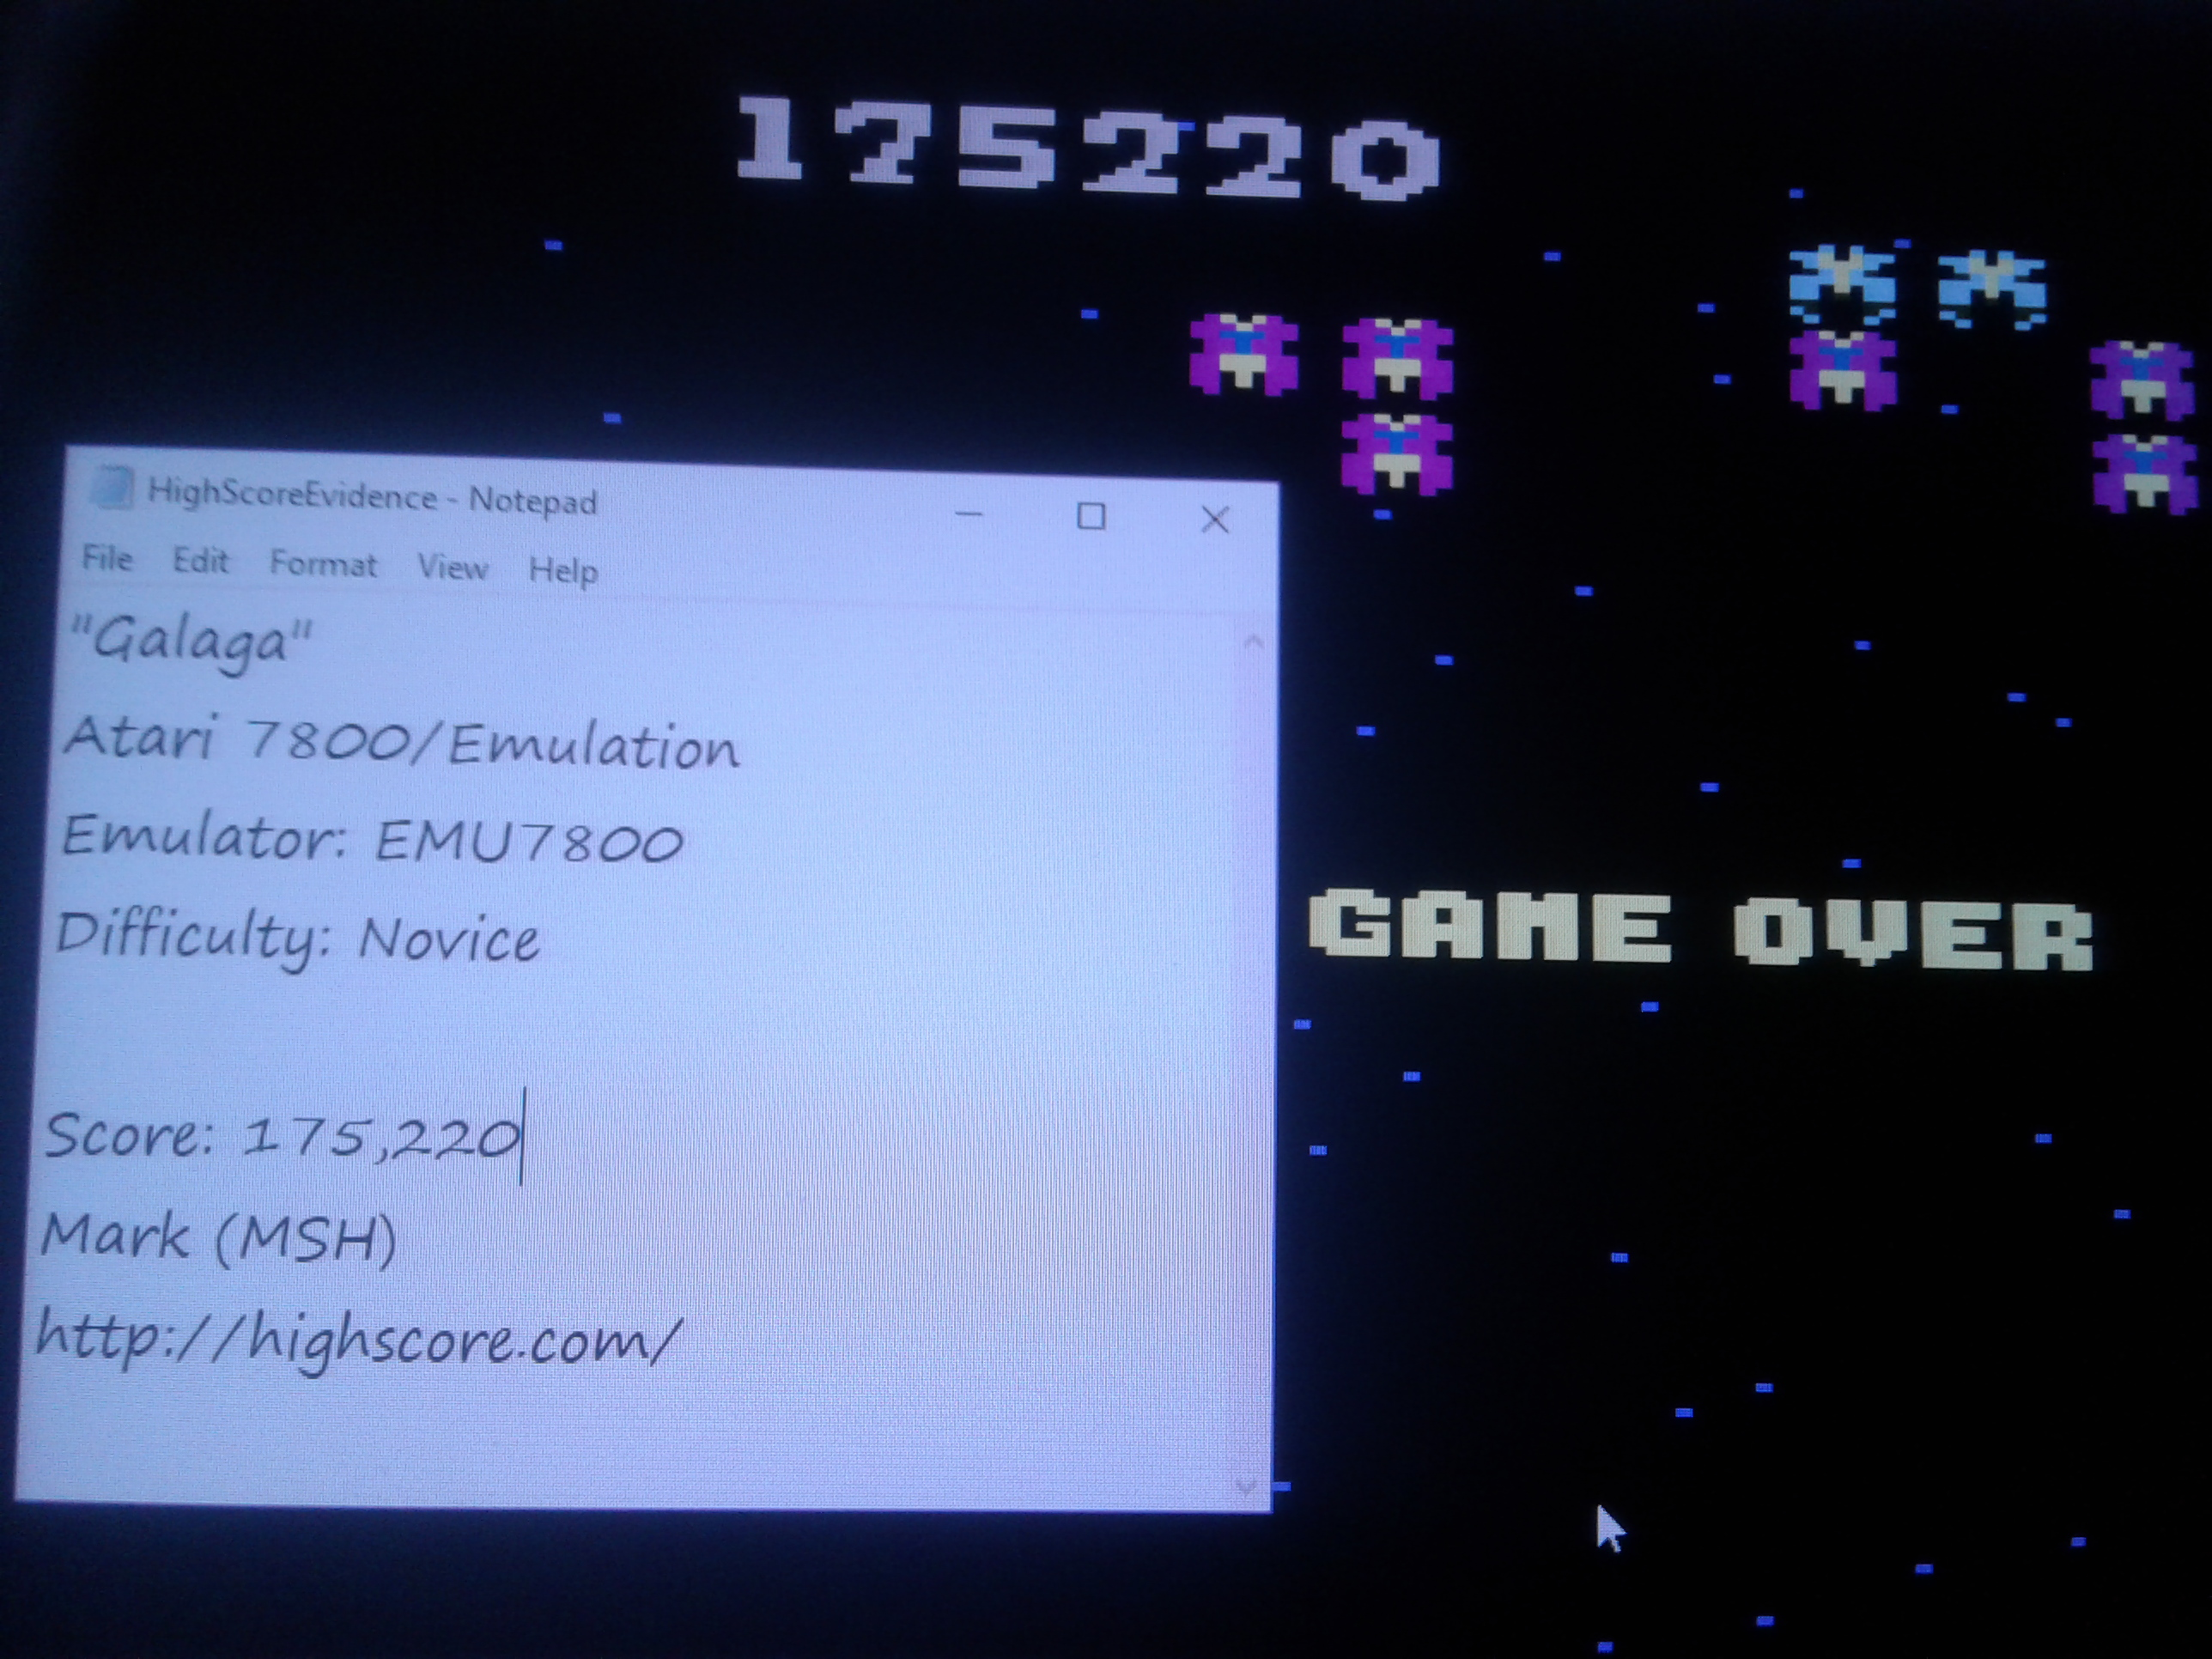 Mark: Galaga: Novice (Atari 7800 Emulated) 175,220 points on 2019-02-02 01:56:56